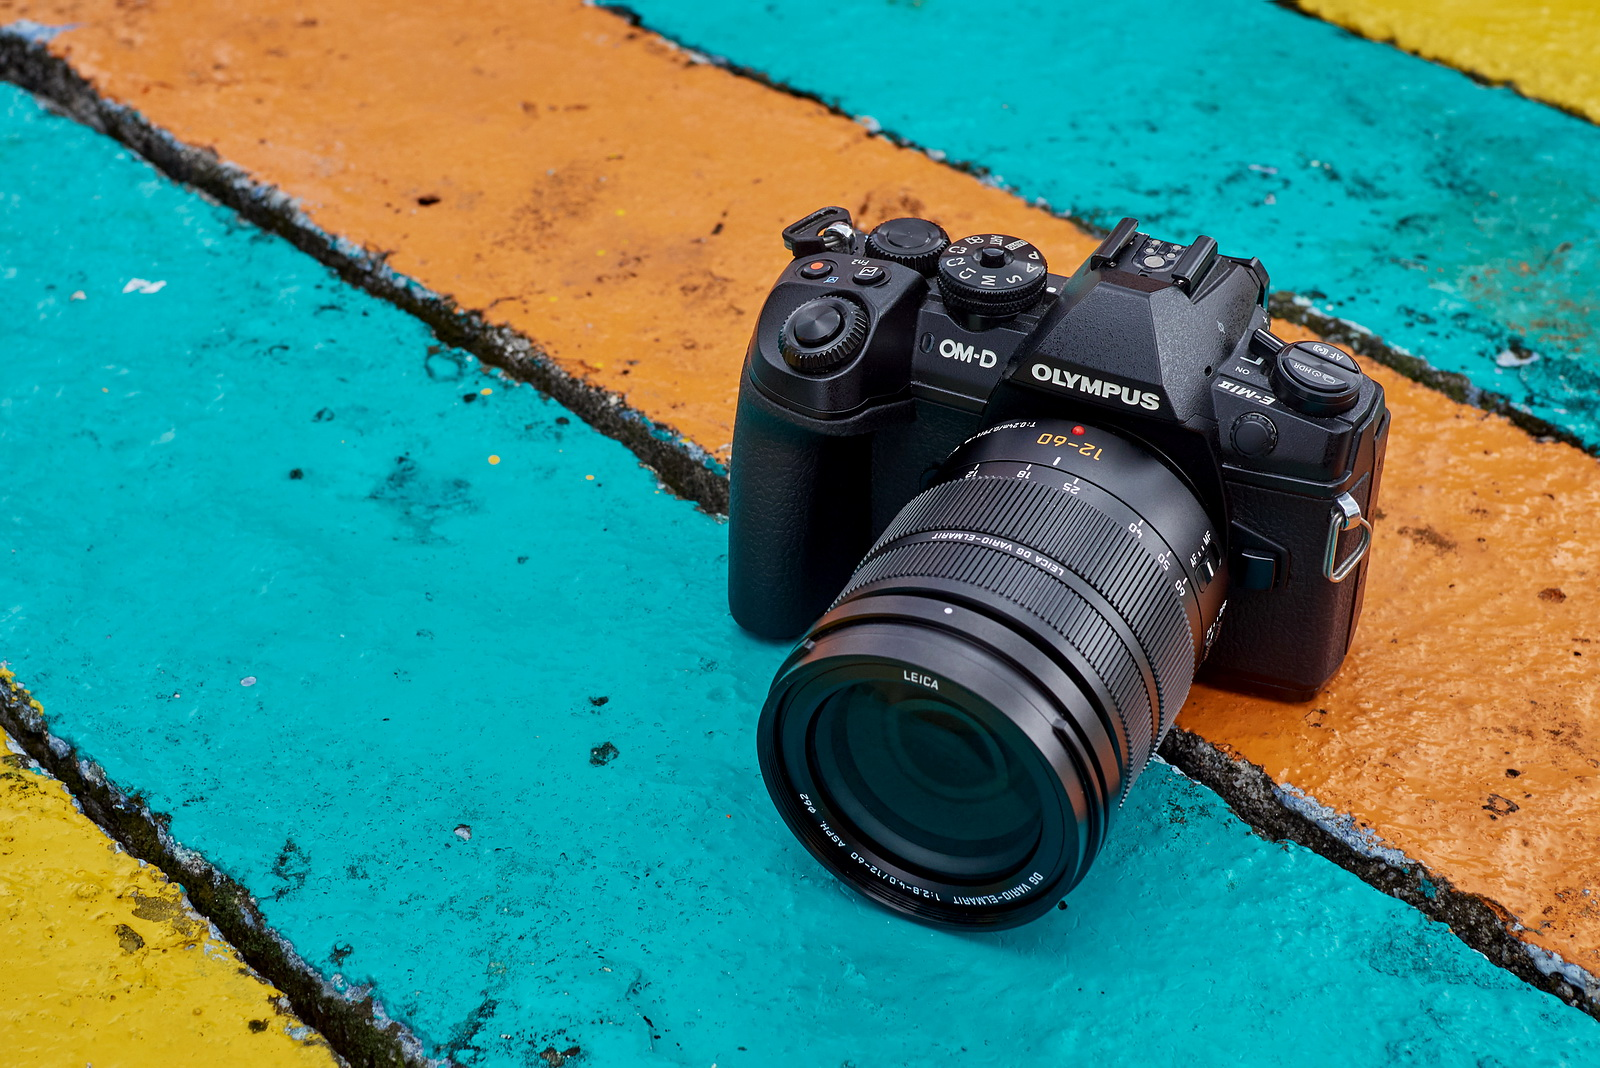 Panasonic Ming Thein Photographer Lumix Gh5 Body Lens Leica 12mm F 14 Asph Olympus And Have Been Releasing Increasingly Similar Overlapping Lenses As The Micro Four Thirds System Matures More Options Choice Can